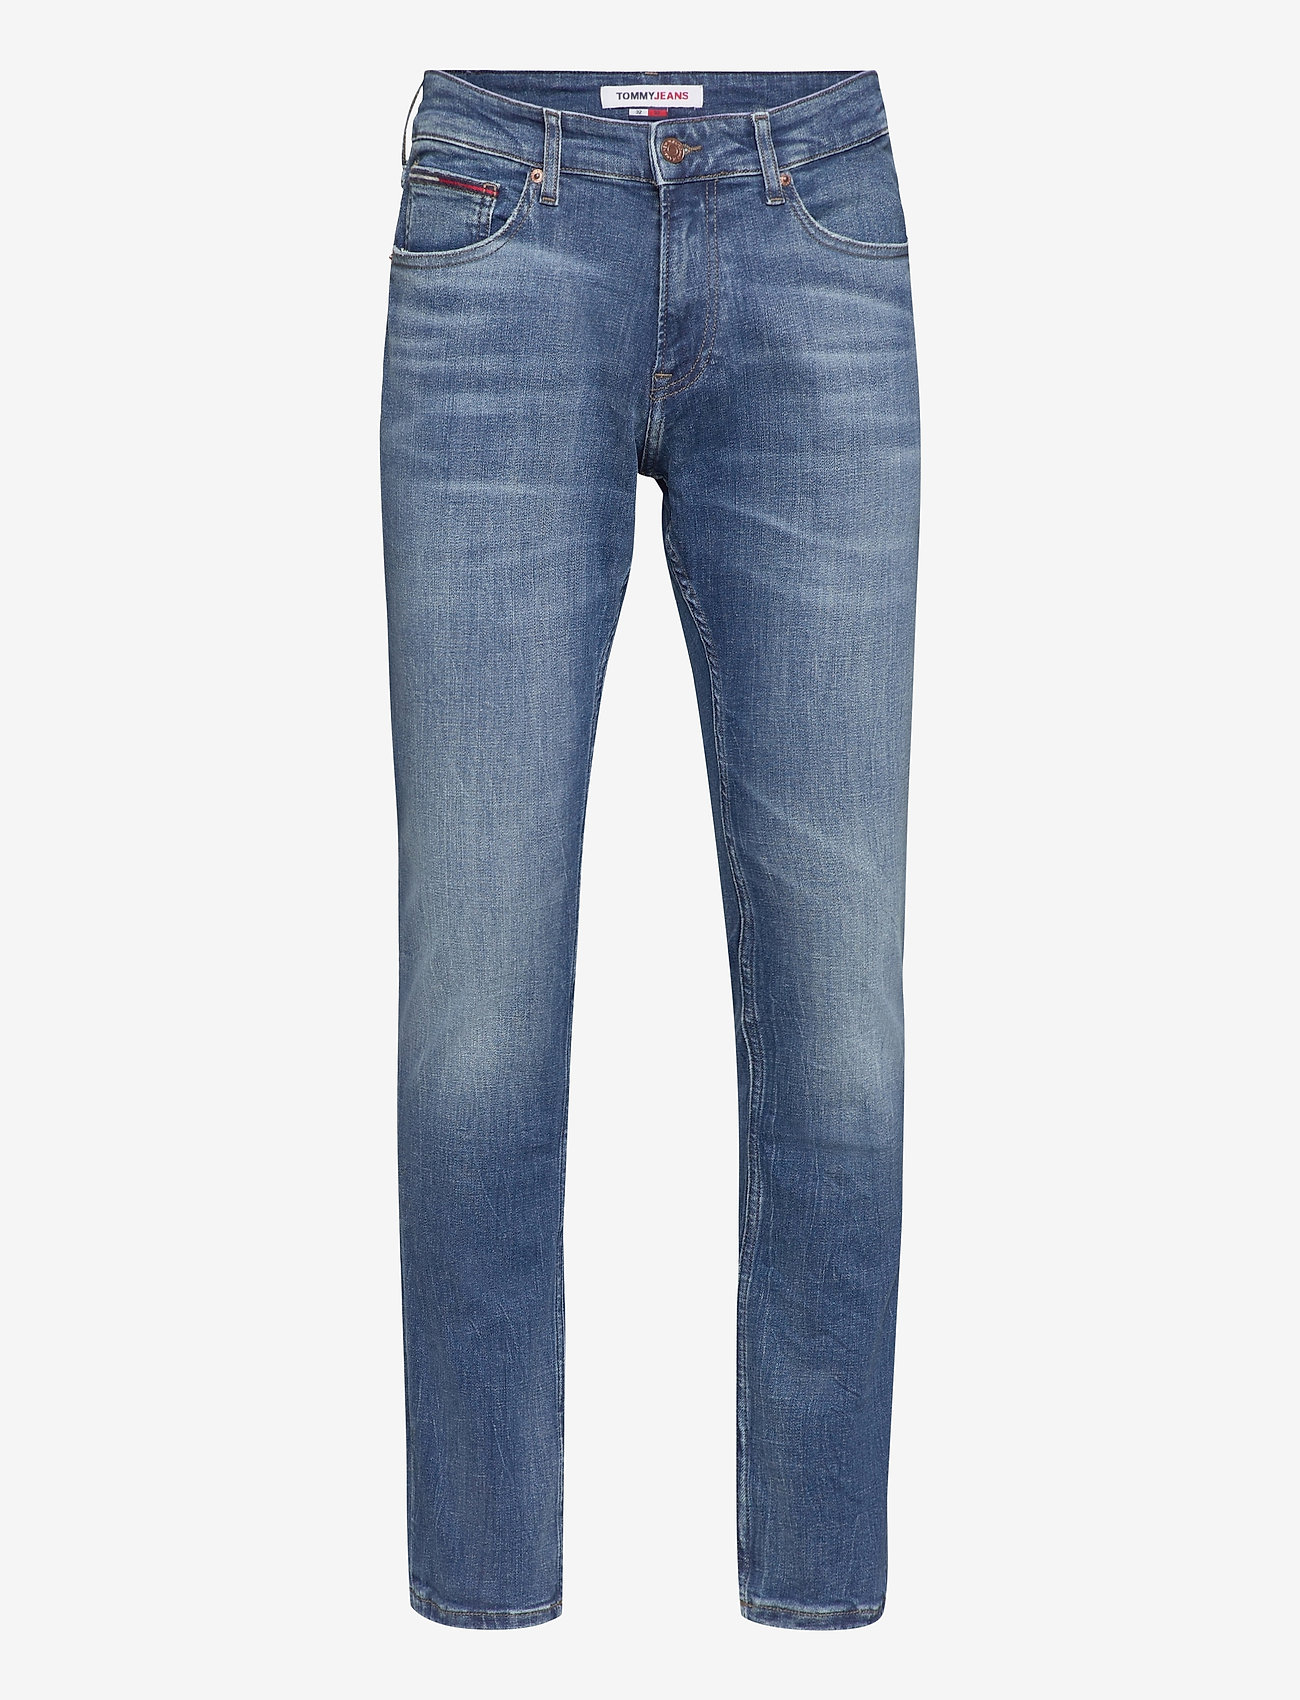 Tommy Jeans - SCANTON CE 132 MID BLUE STRETCH - slim jeans - mid blue - 0